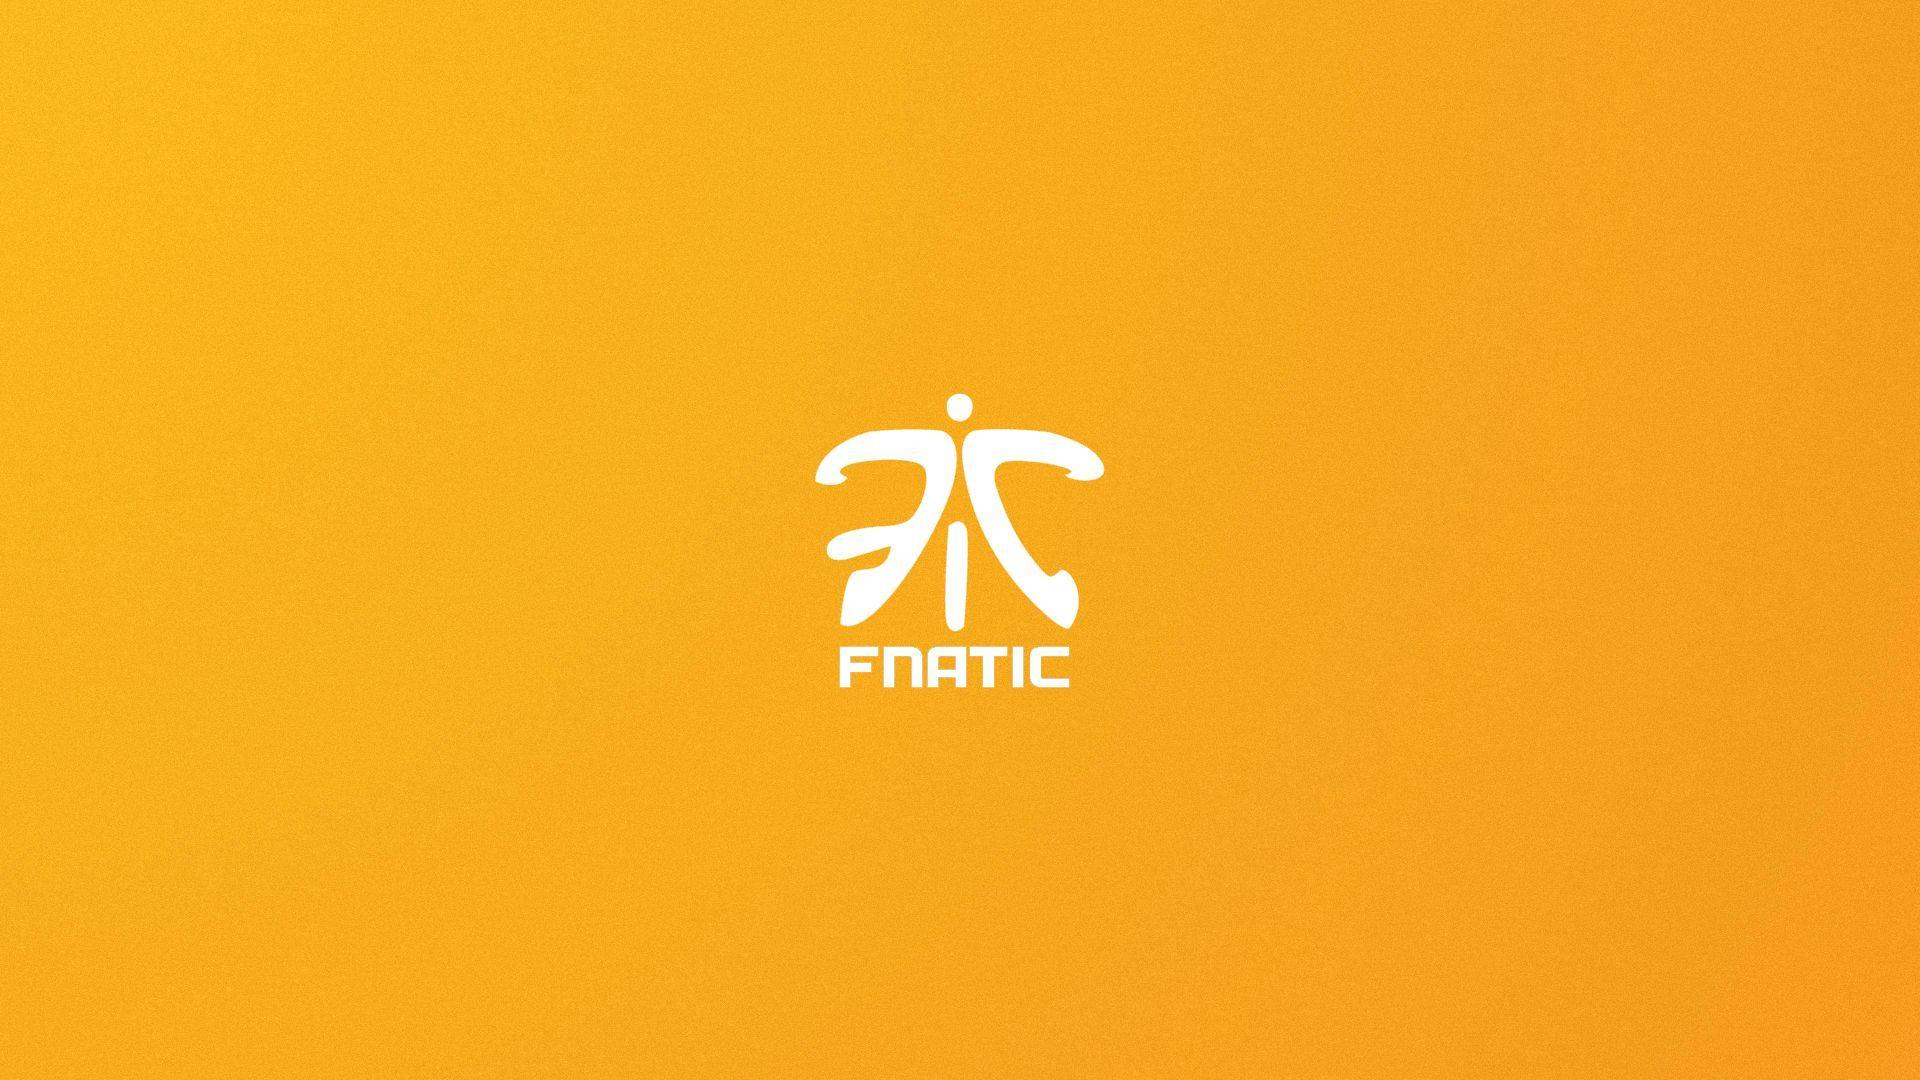 Fnatic Game HD Wallpapers